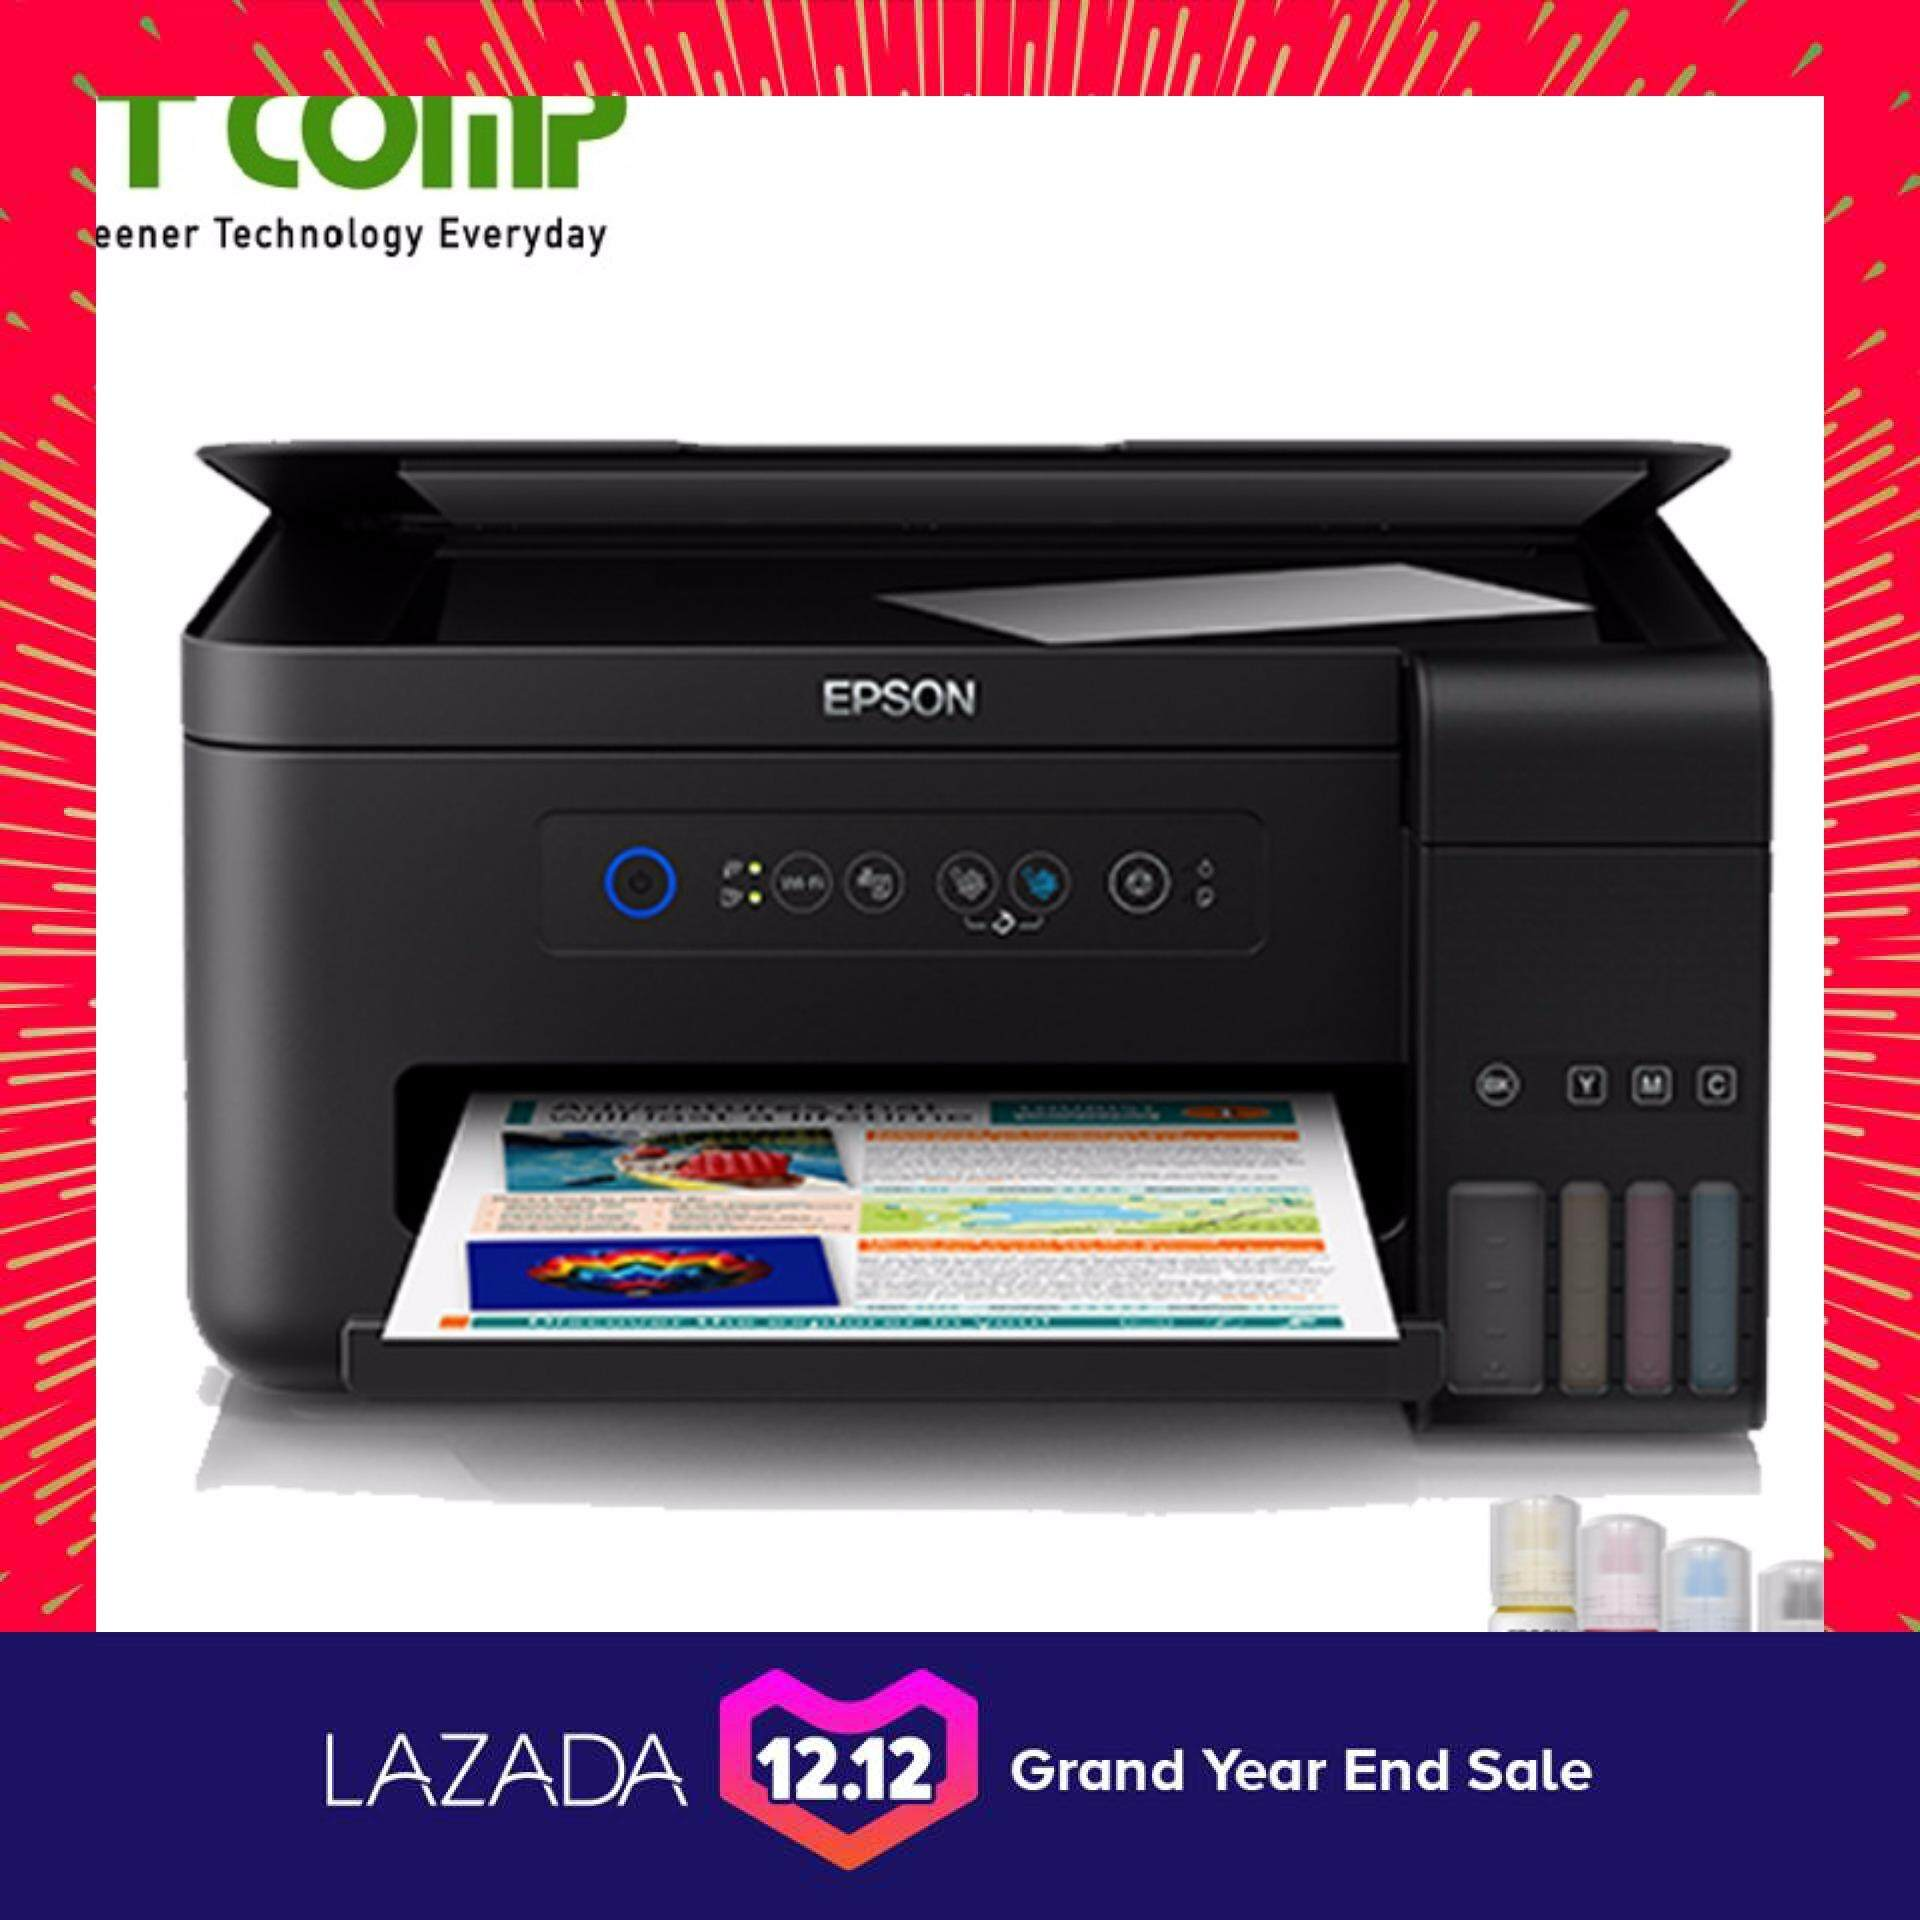 Deal Big Save Epson L4150 Wi-Fi All-in-One Ink Tank Printer with